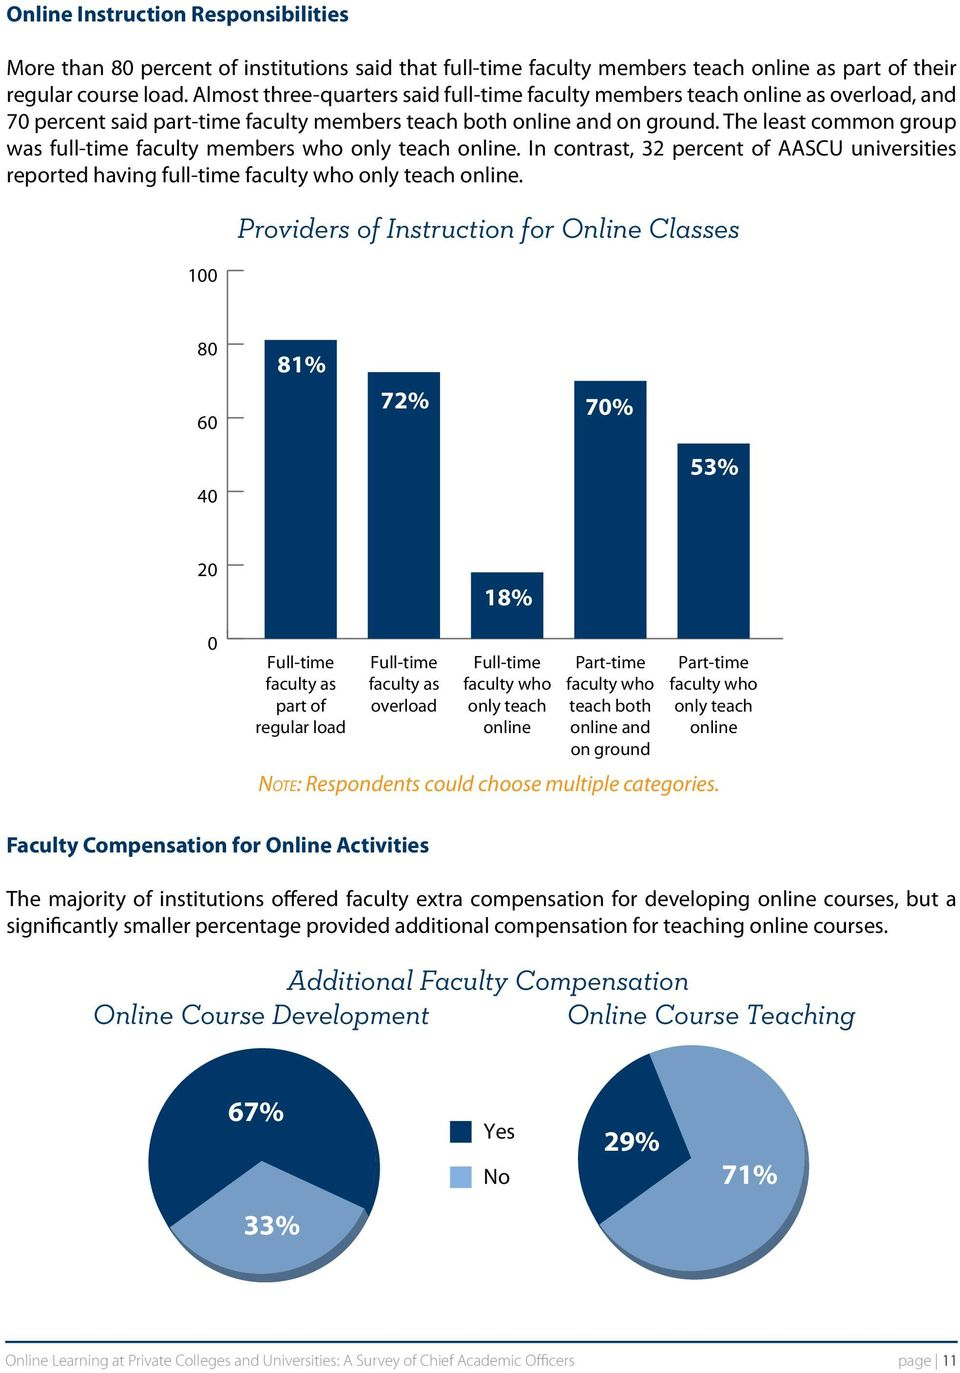 The least common group was full-time faculty members who only teach online. In contrast, 32 percent of AASCU universities reported having full-time faculty who only teach online.